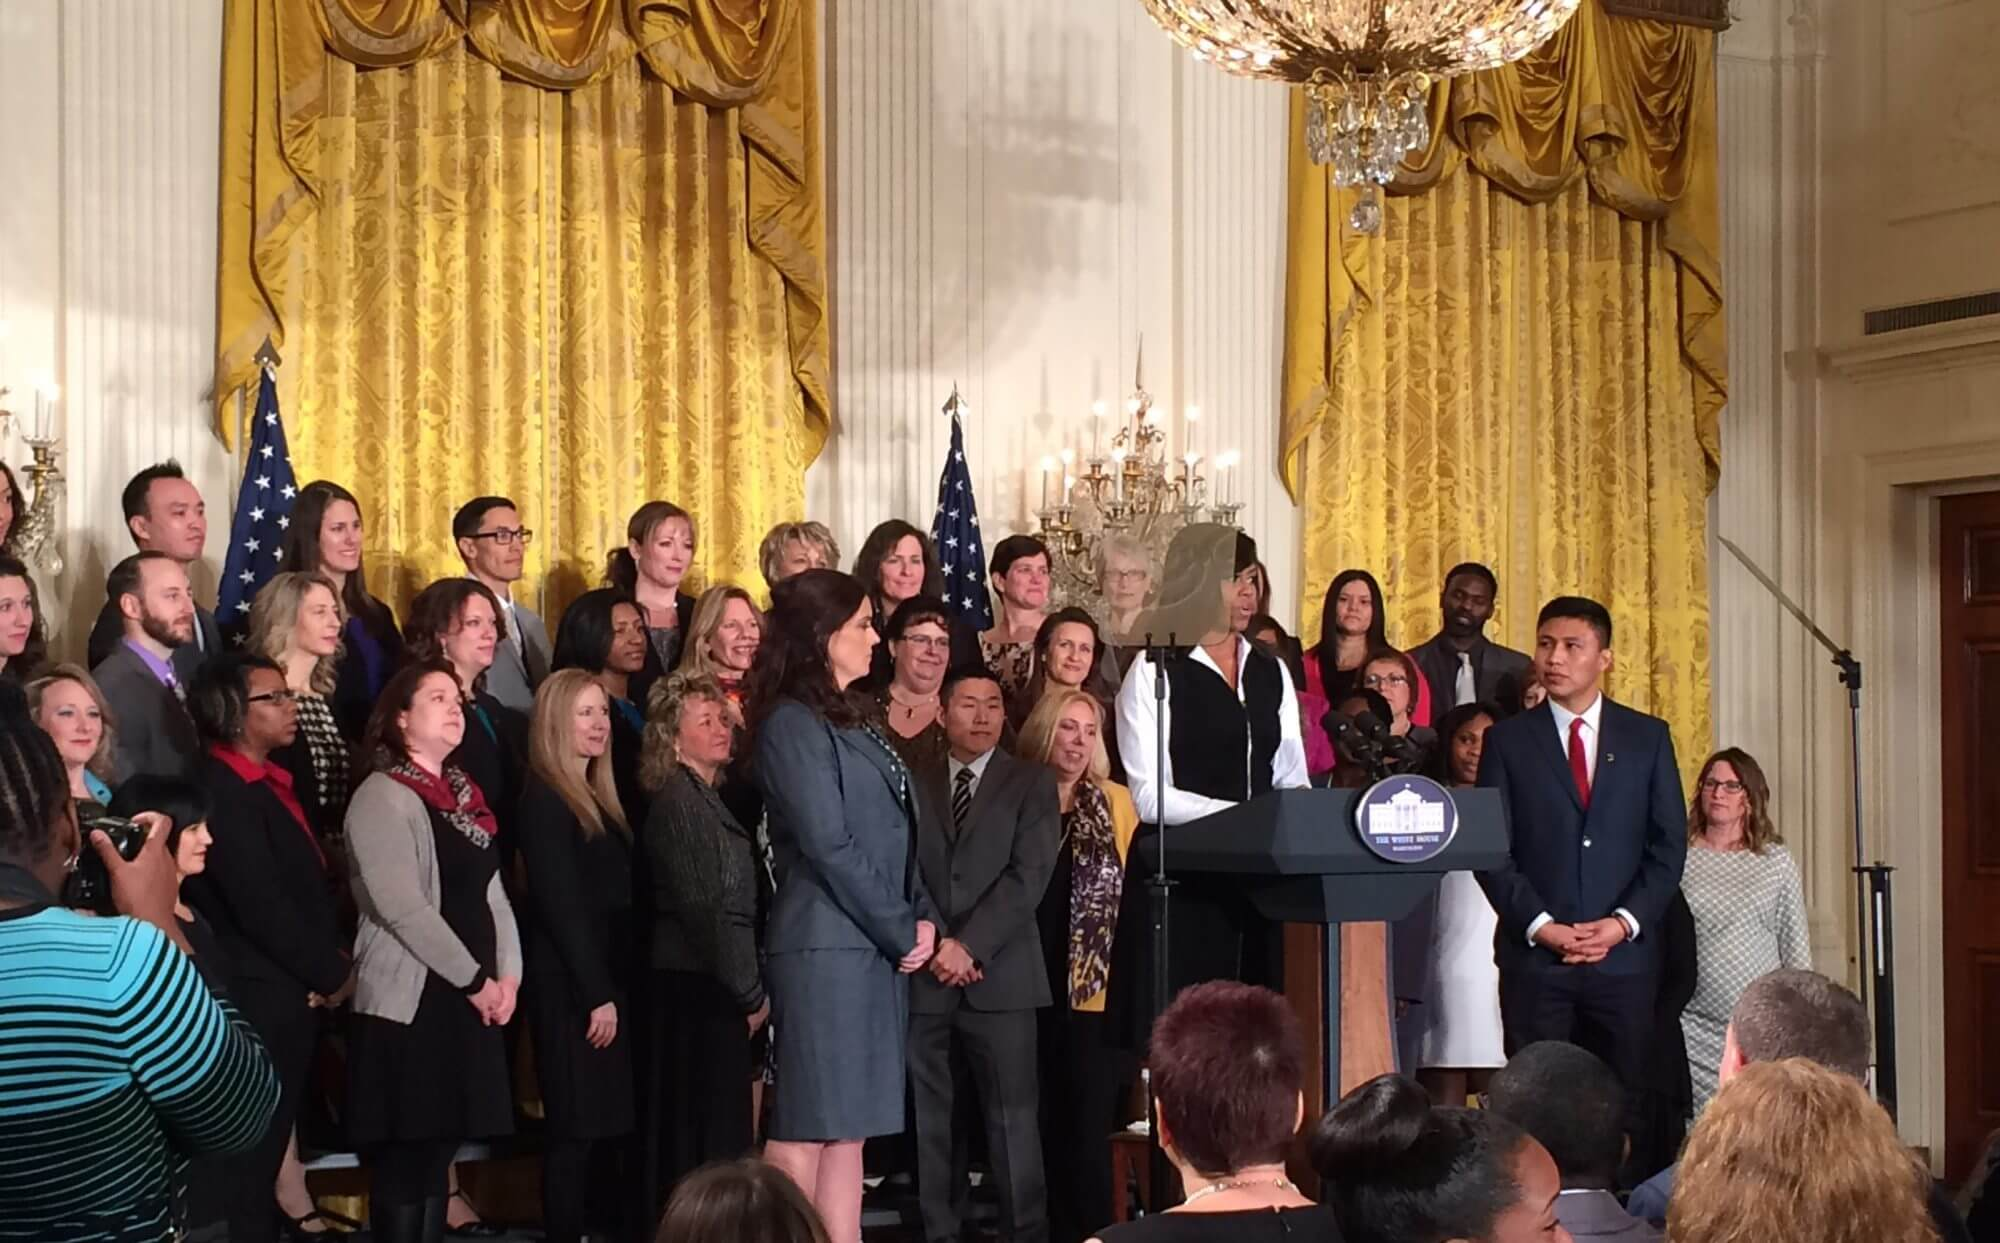 First lady presents counselor of the year award to Arizona counselor